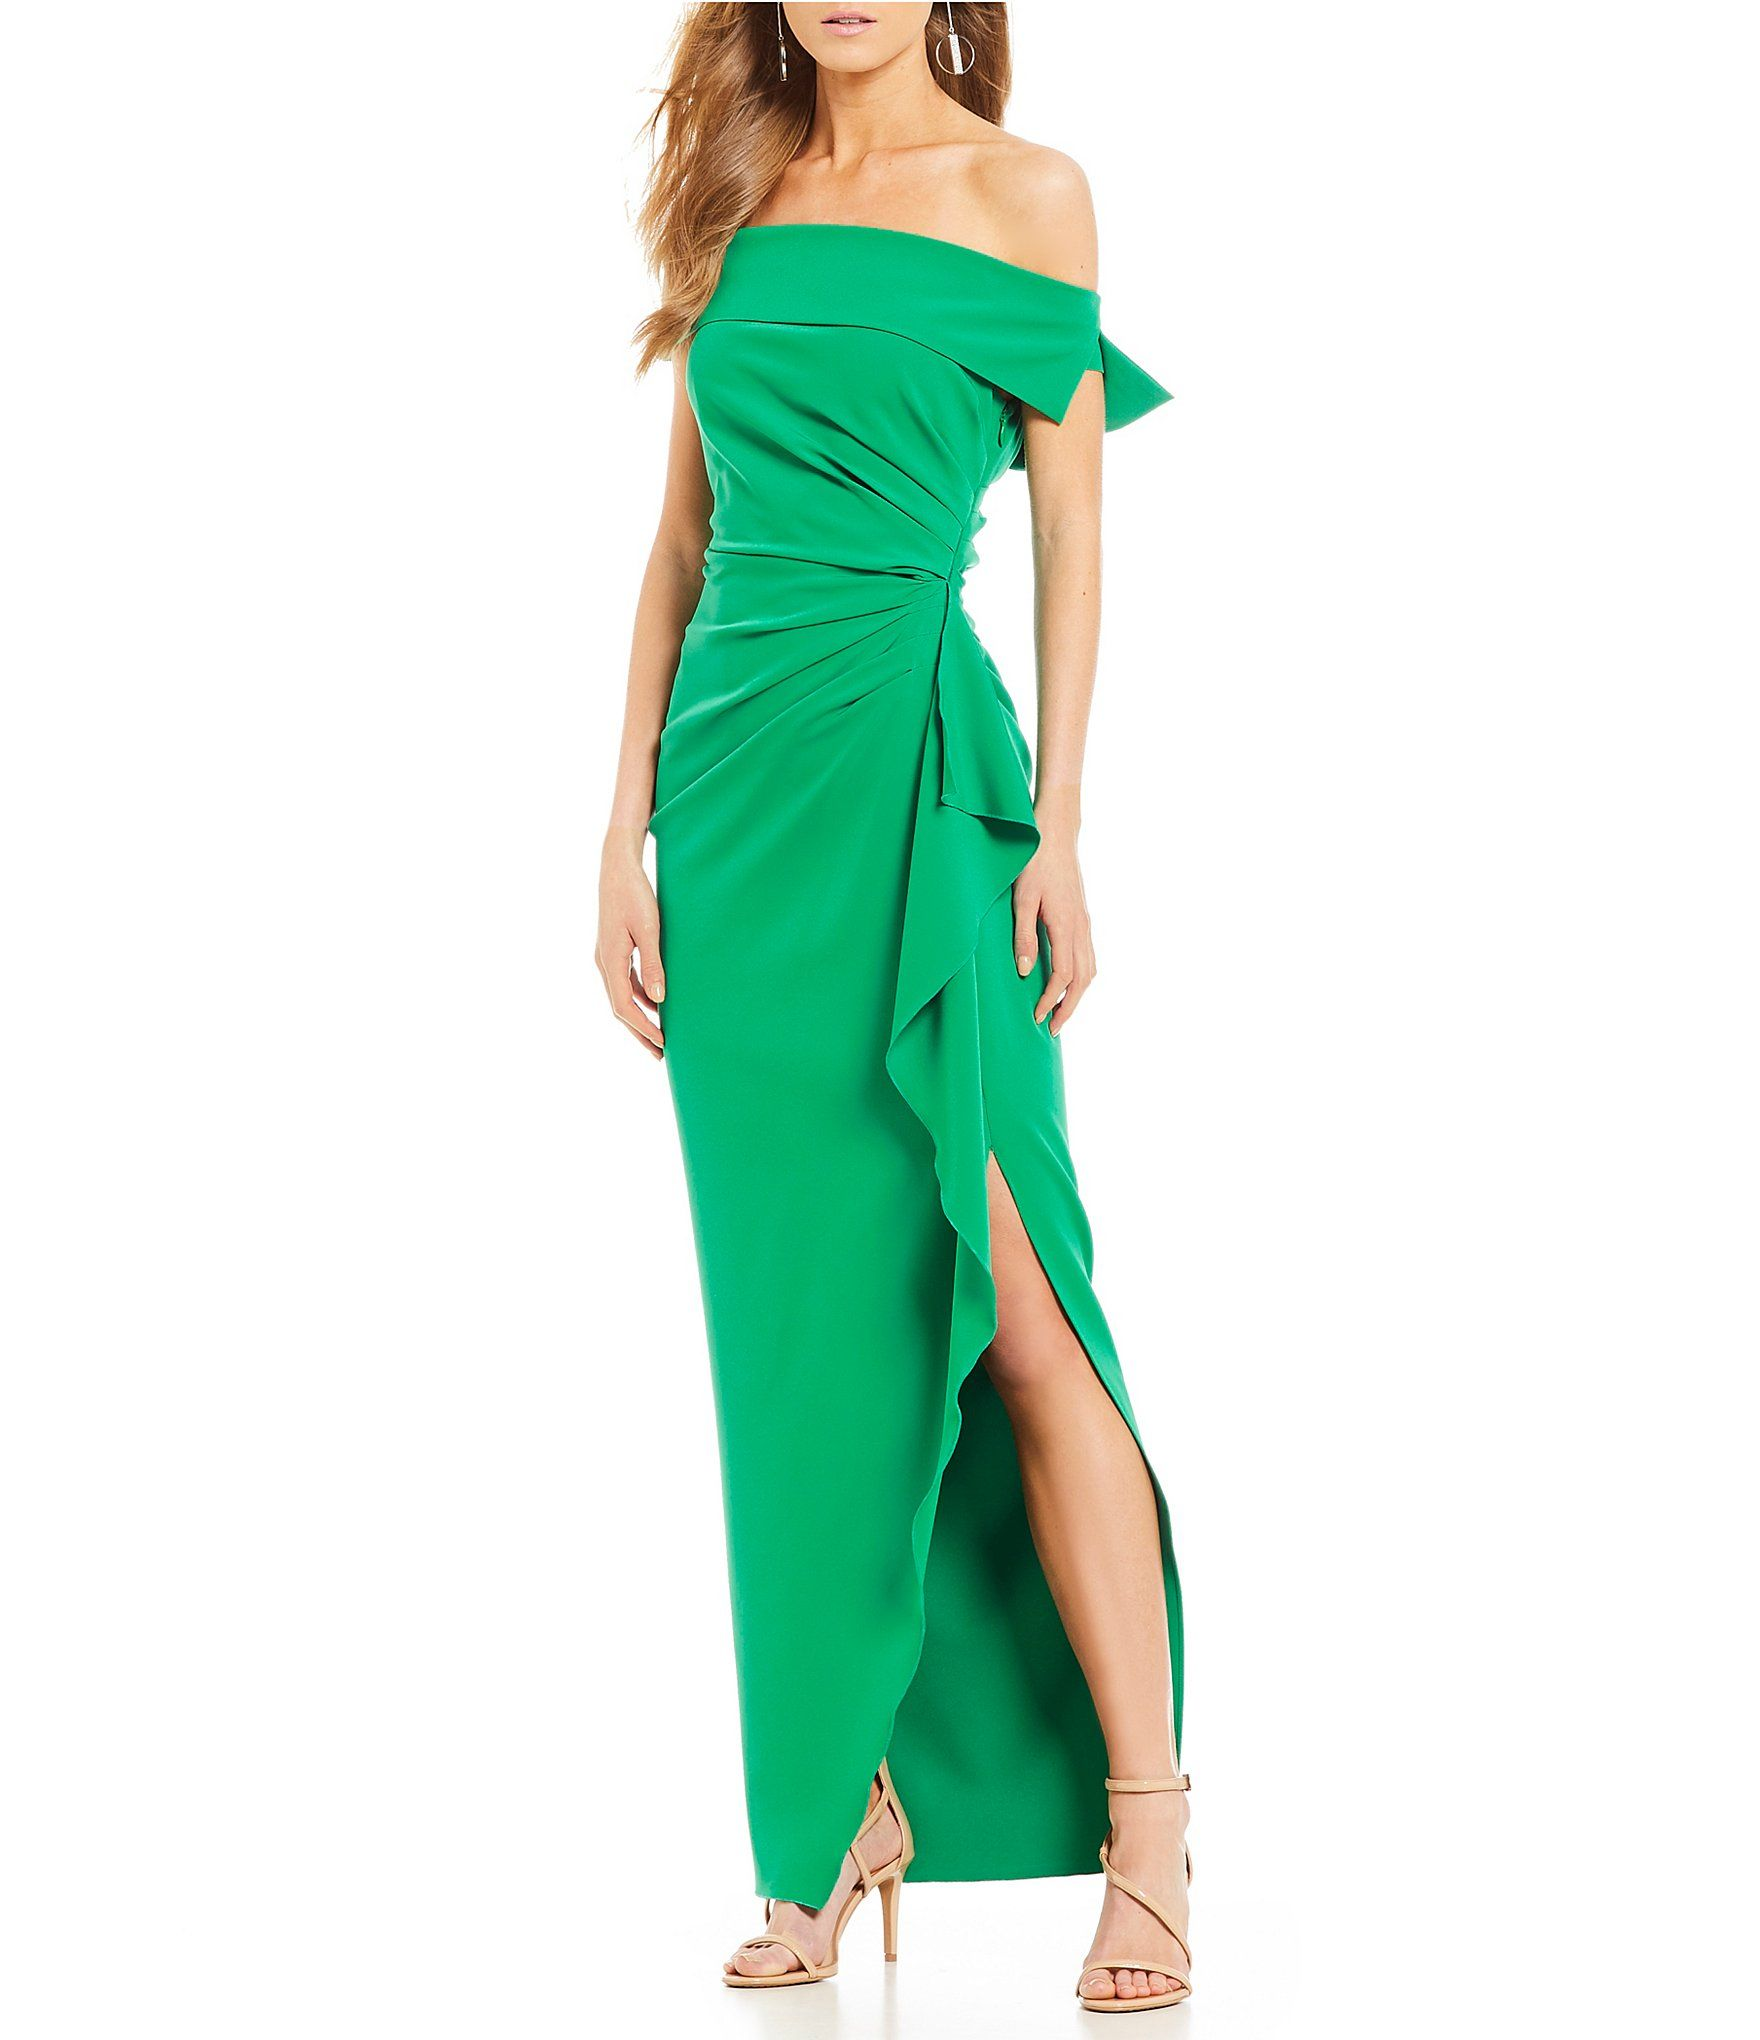 383baa45fa4 Shop for Vince Camuto Off-The-Shoulder Ruched Gown at Dillards.com. Visit  Dillards.com to find clothing